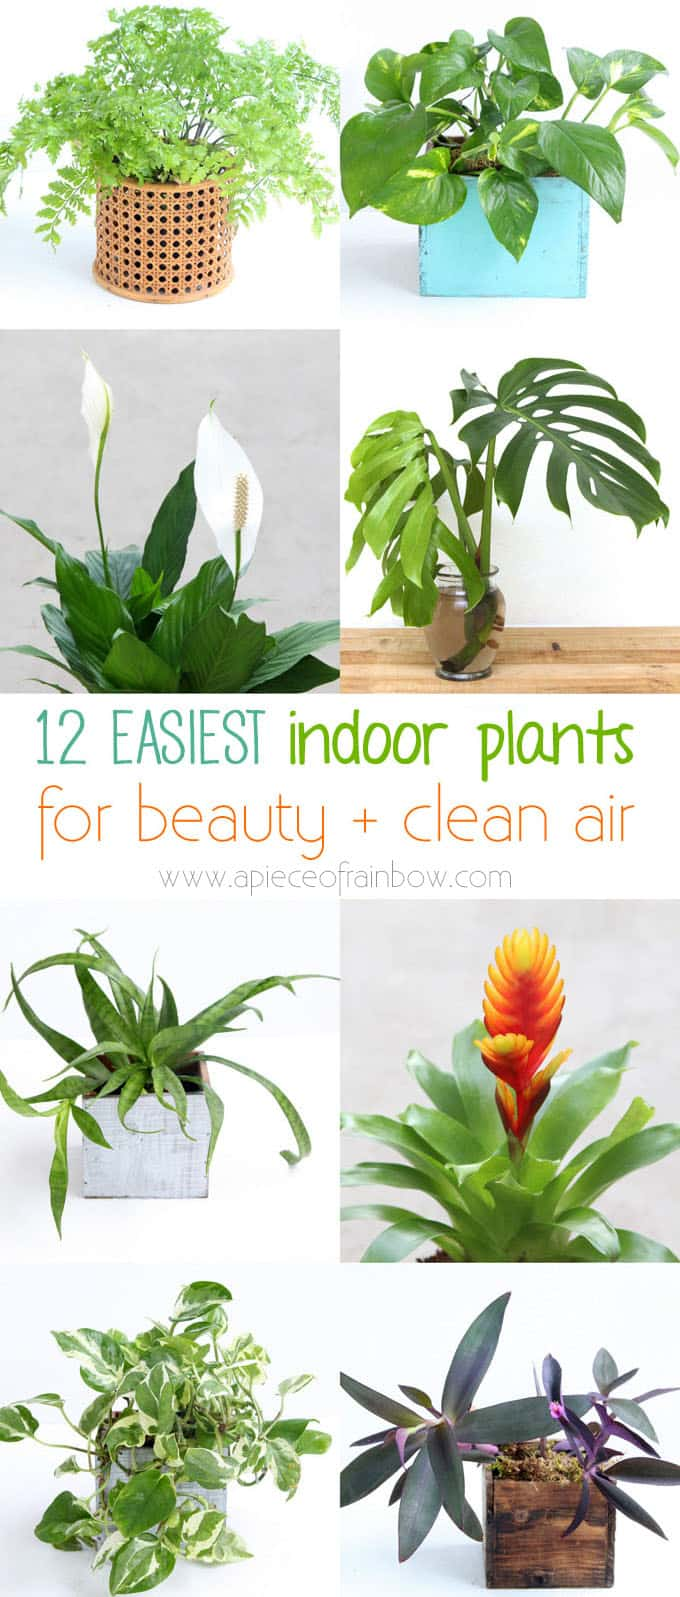 Simple 80 tropical house plants names and pictures for Indoor plants easy maintenance